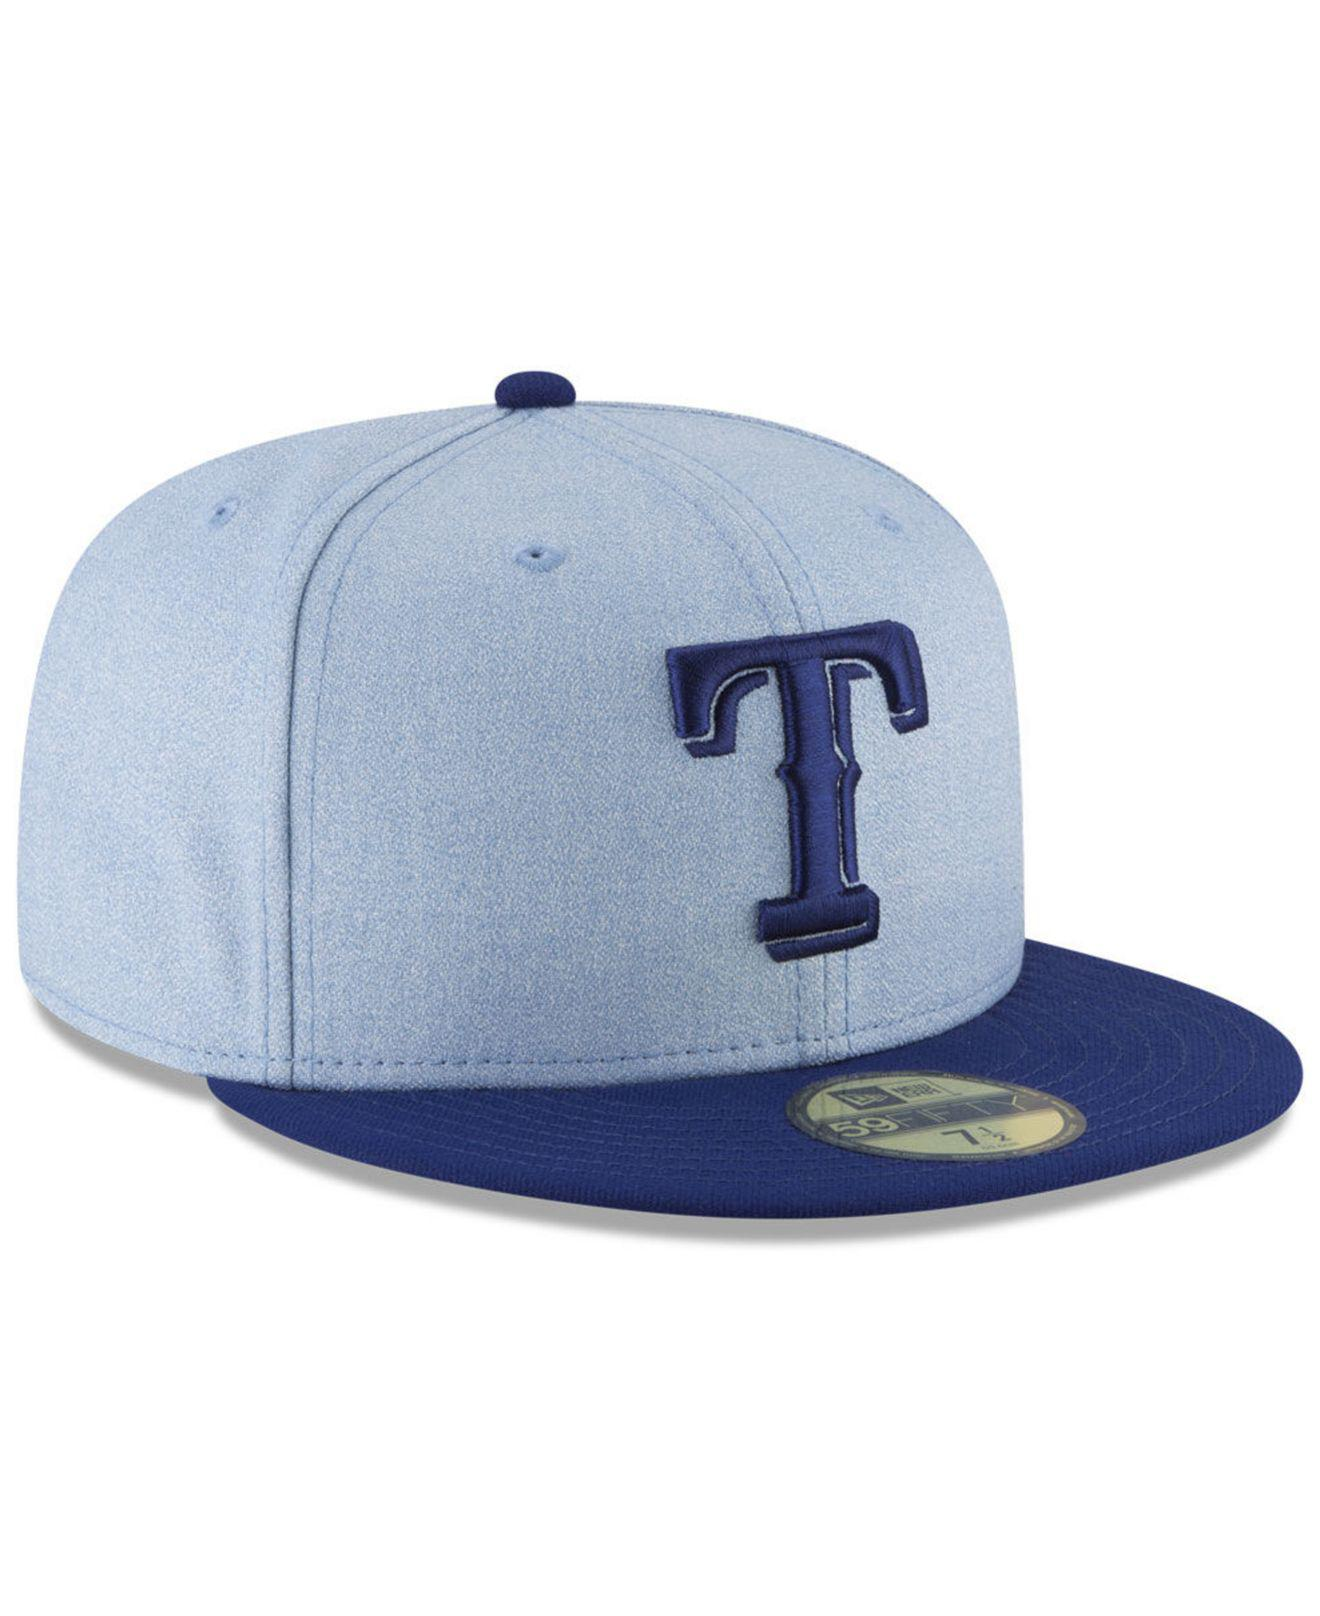 info for 0bd20 bb109 ... real texas rangers fathers day 59fifty fitted cap 2018 for men lyst.  view fullscreen 53d03